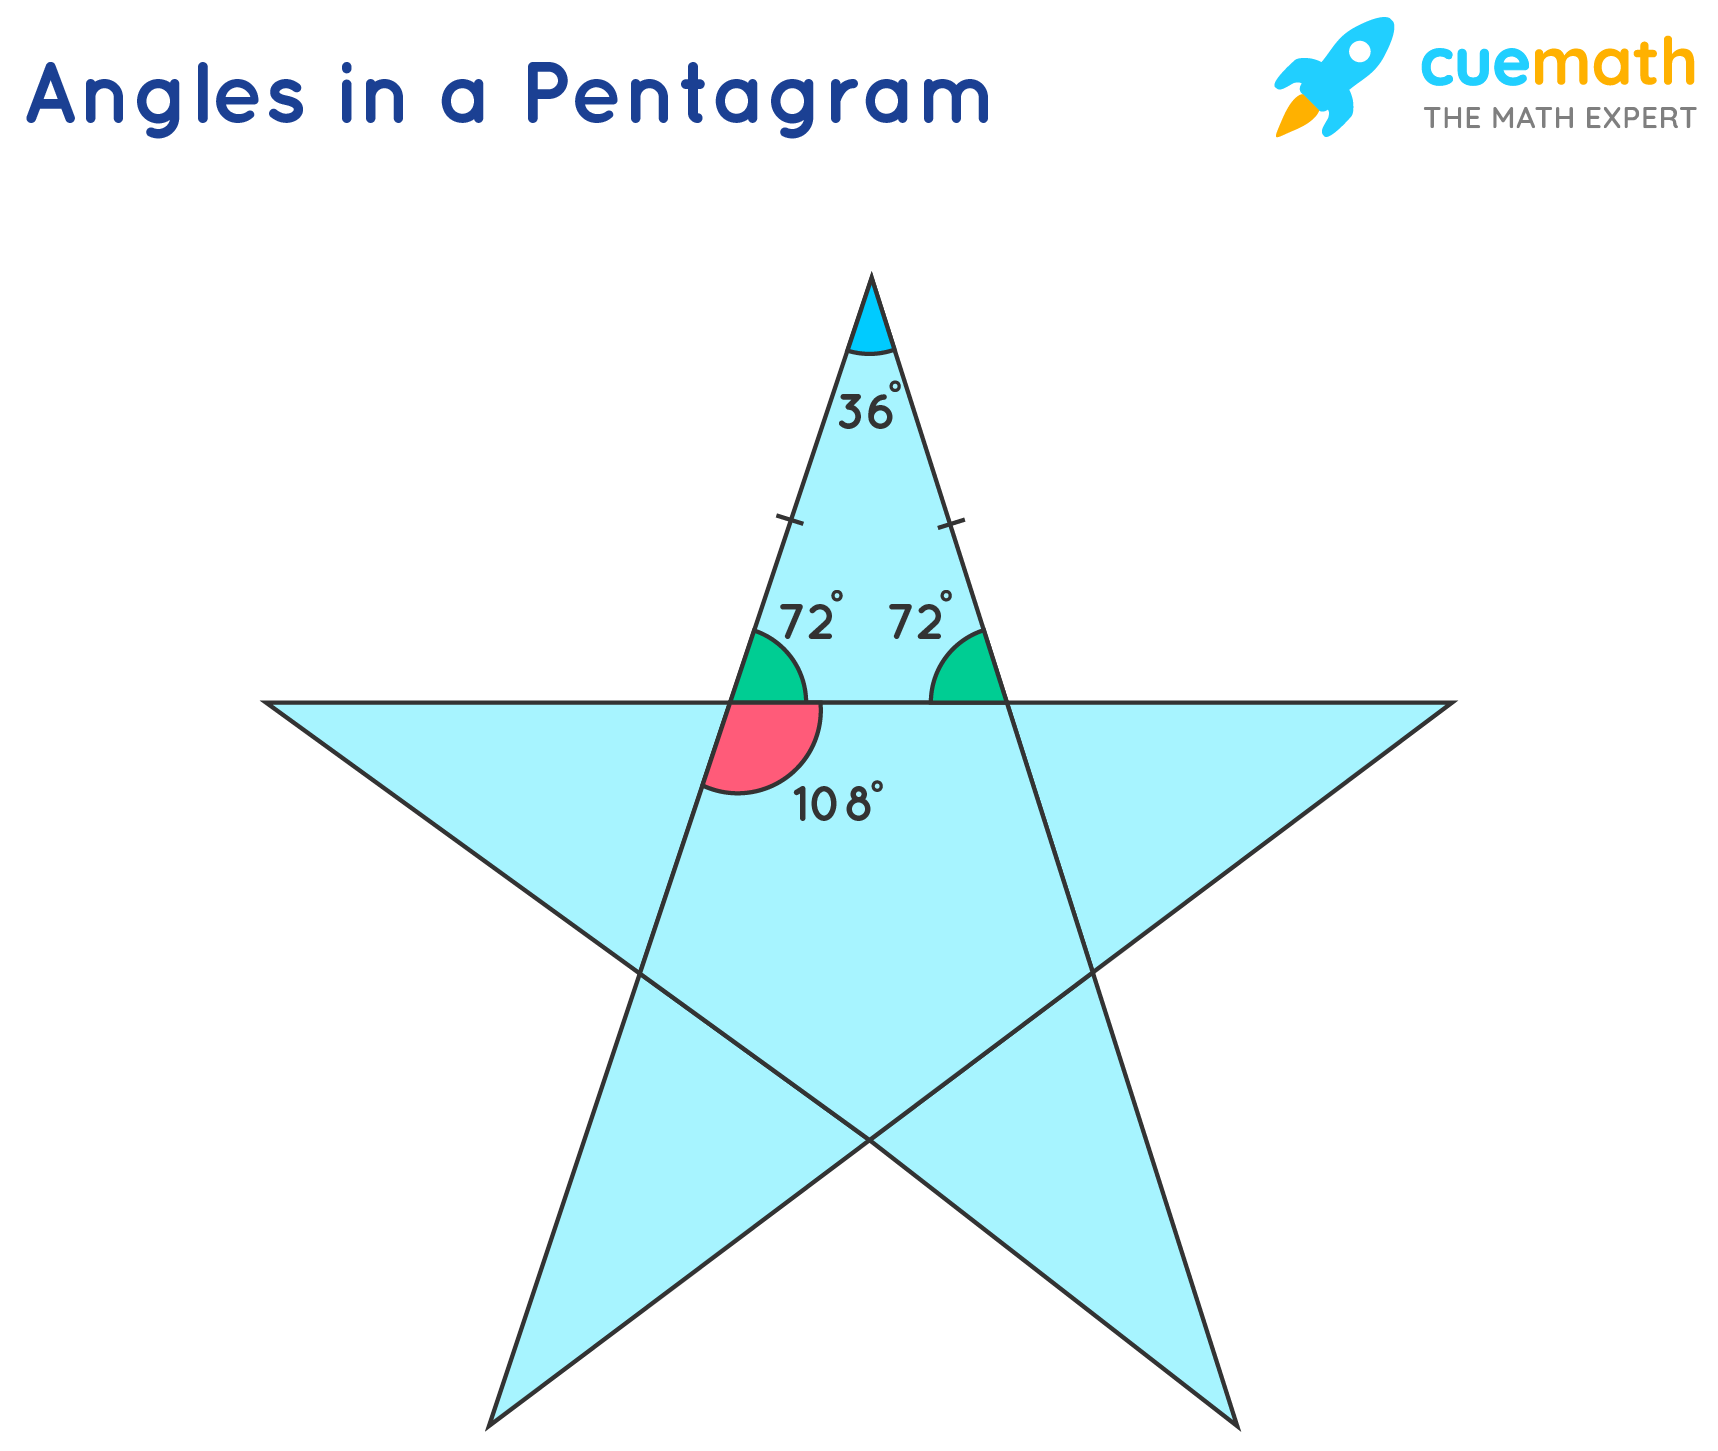 Angles in a Pentagram